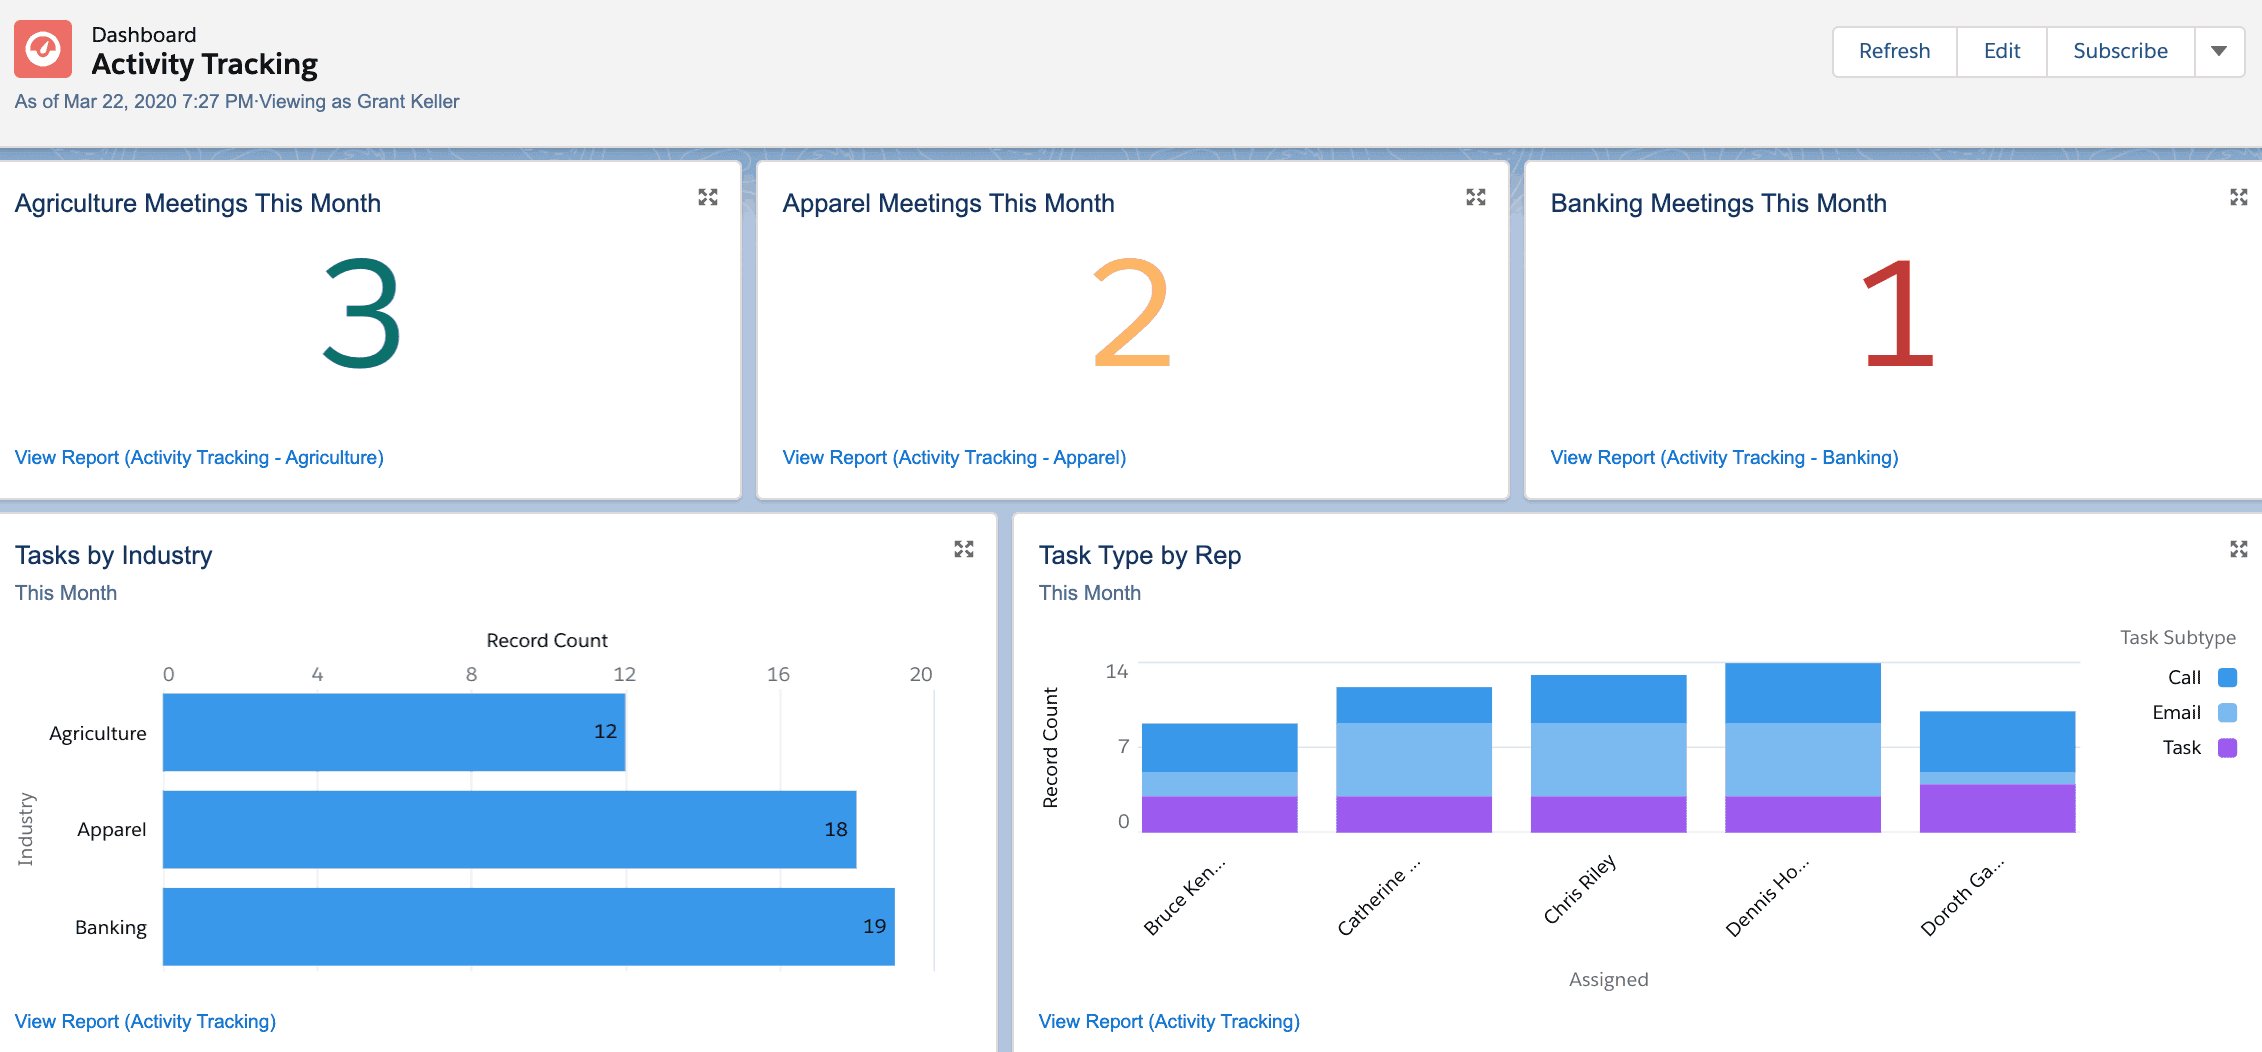 Activity Tracking Dashboard